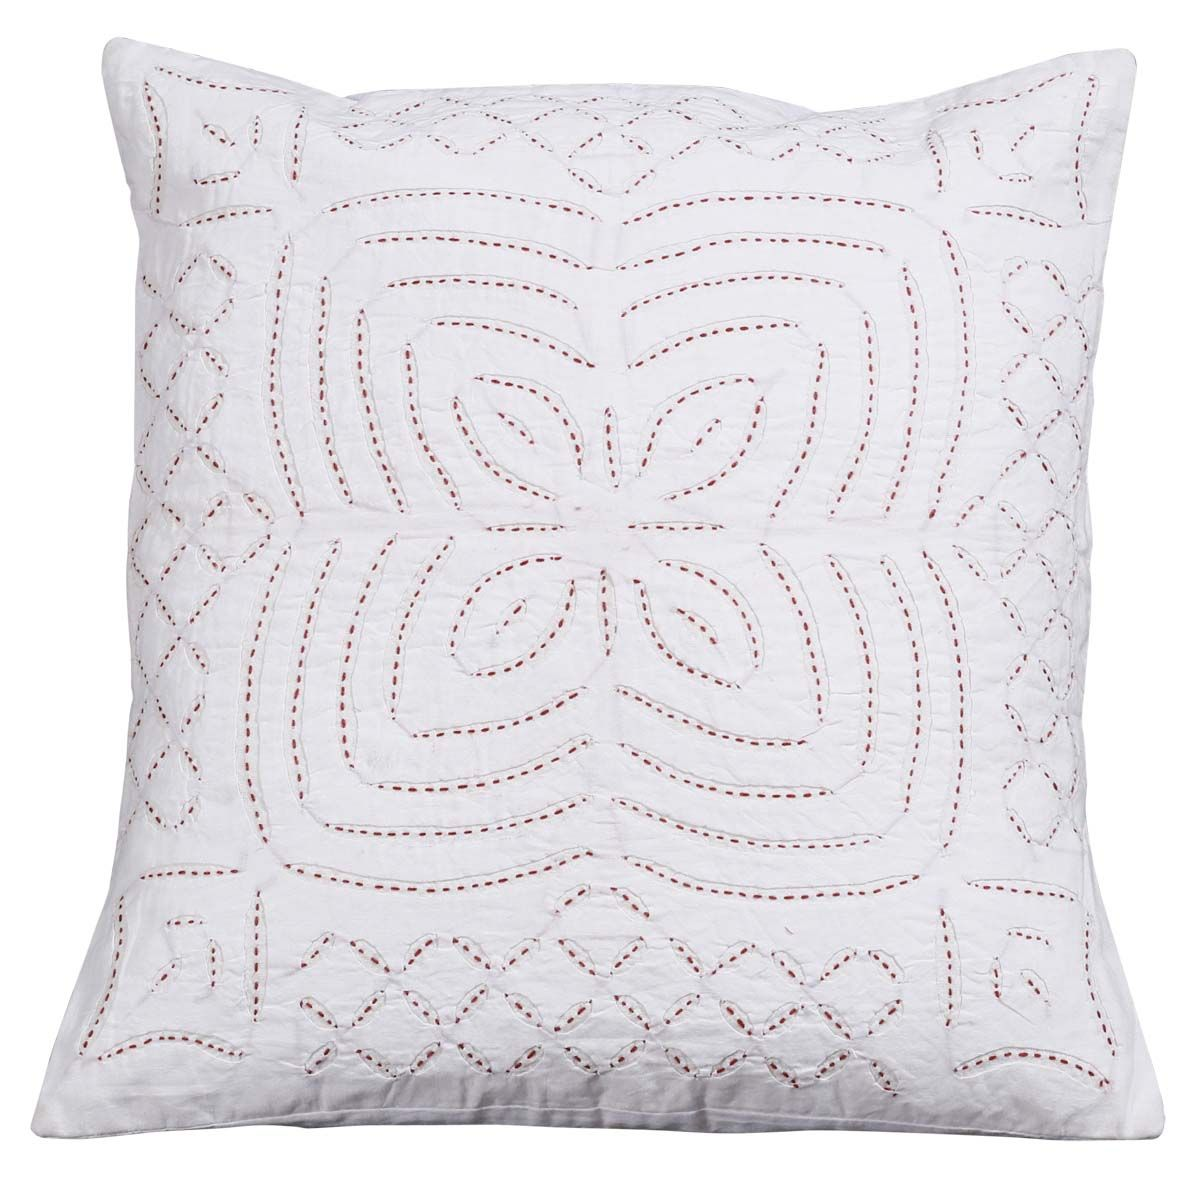 Bulk Wholesale White Cushion Cover In Pure Cotton 16x16 Hand Stitched Throw Pillow Cover With Re Throw Pillows White Cushion Covers White Throw Pillow Covers